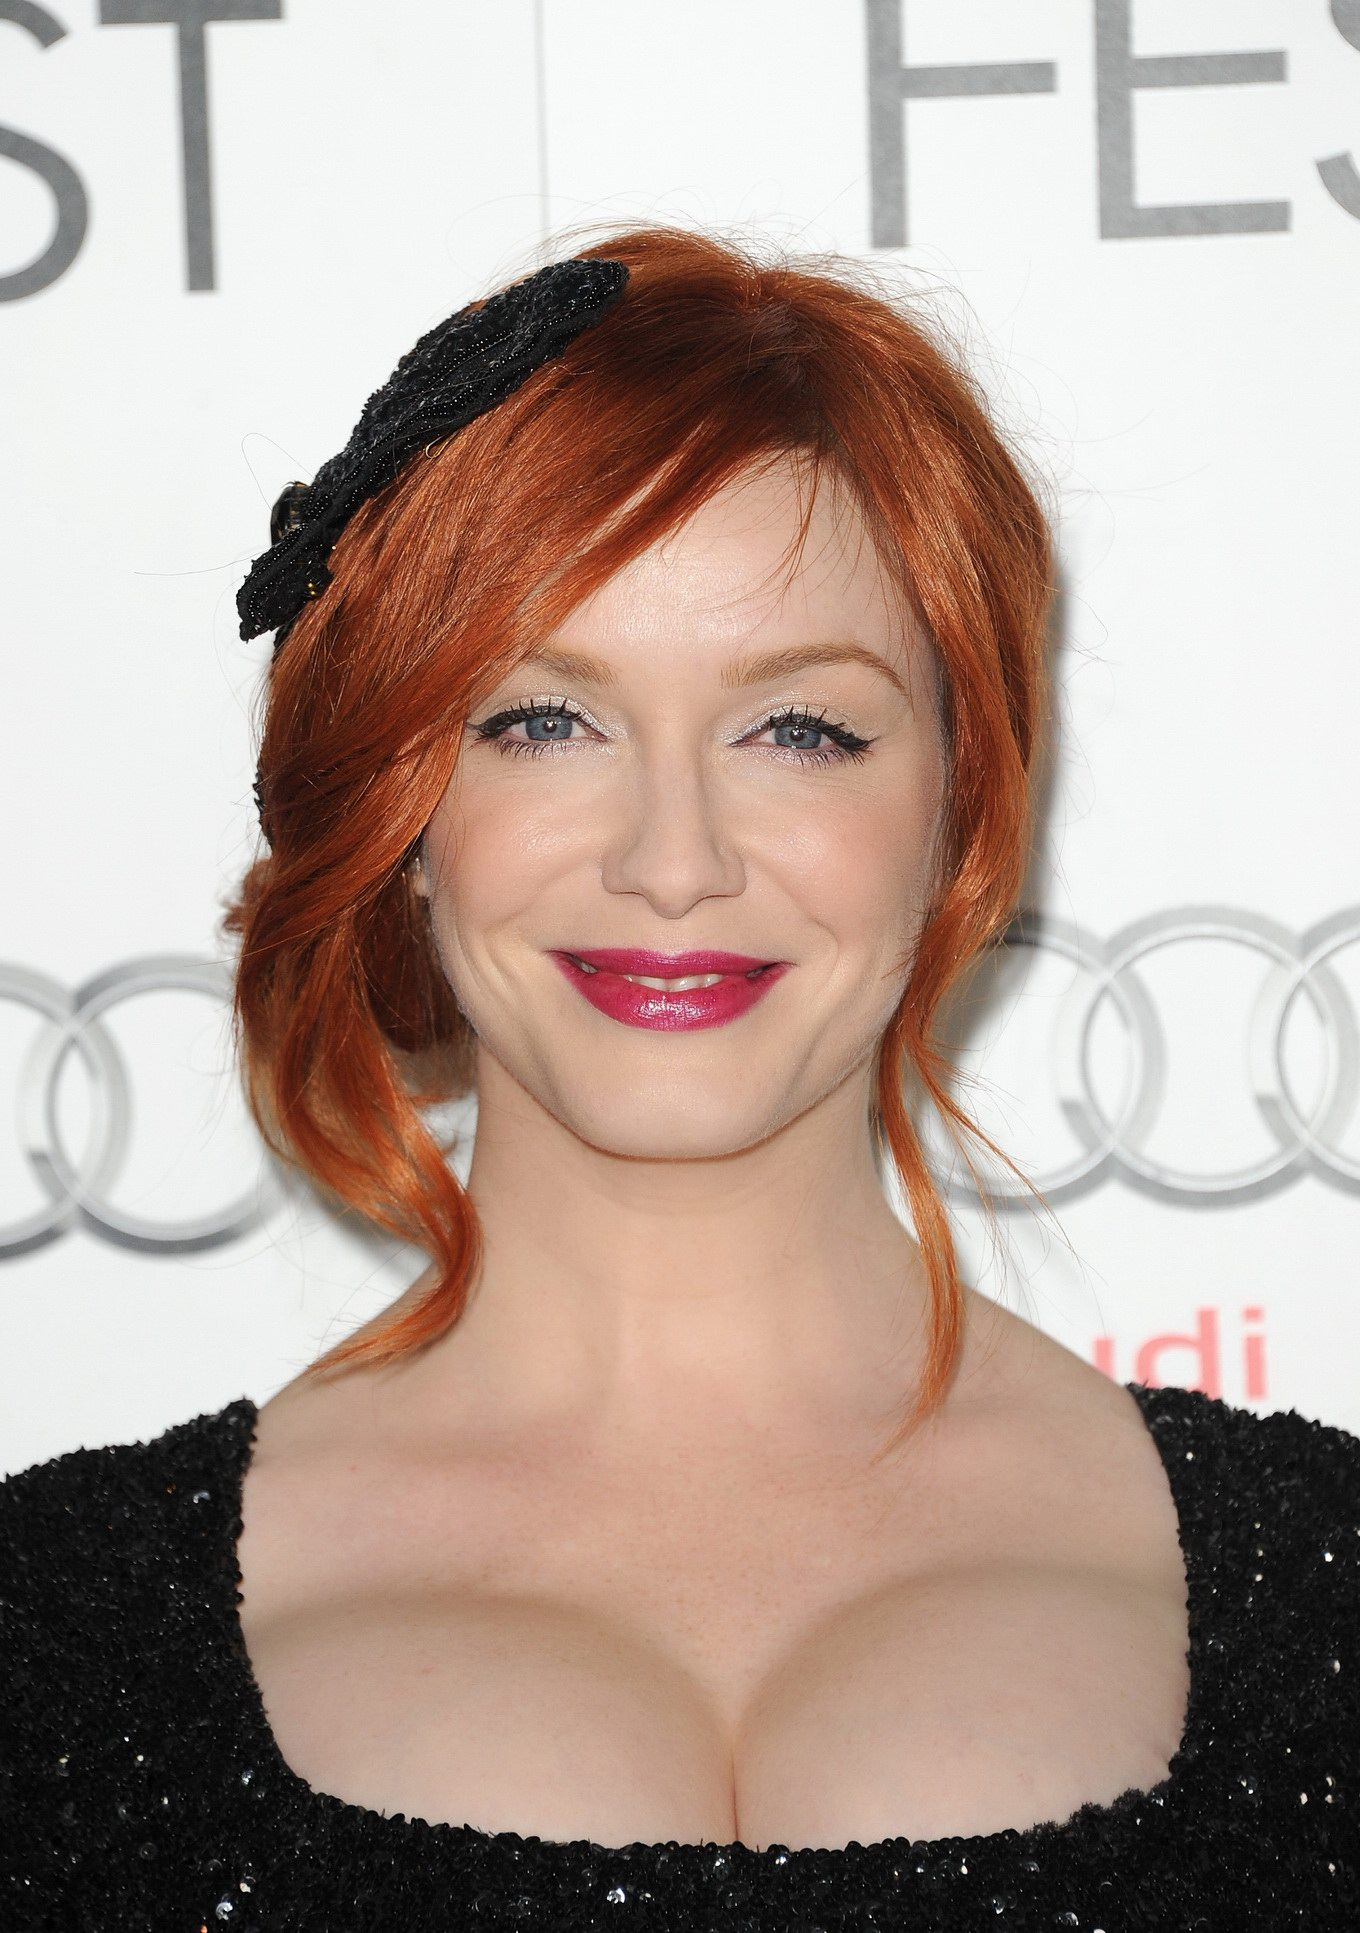 Christina hendricks shows awesome cleavage wearing a black for The hendricks